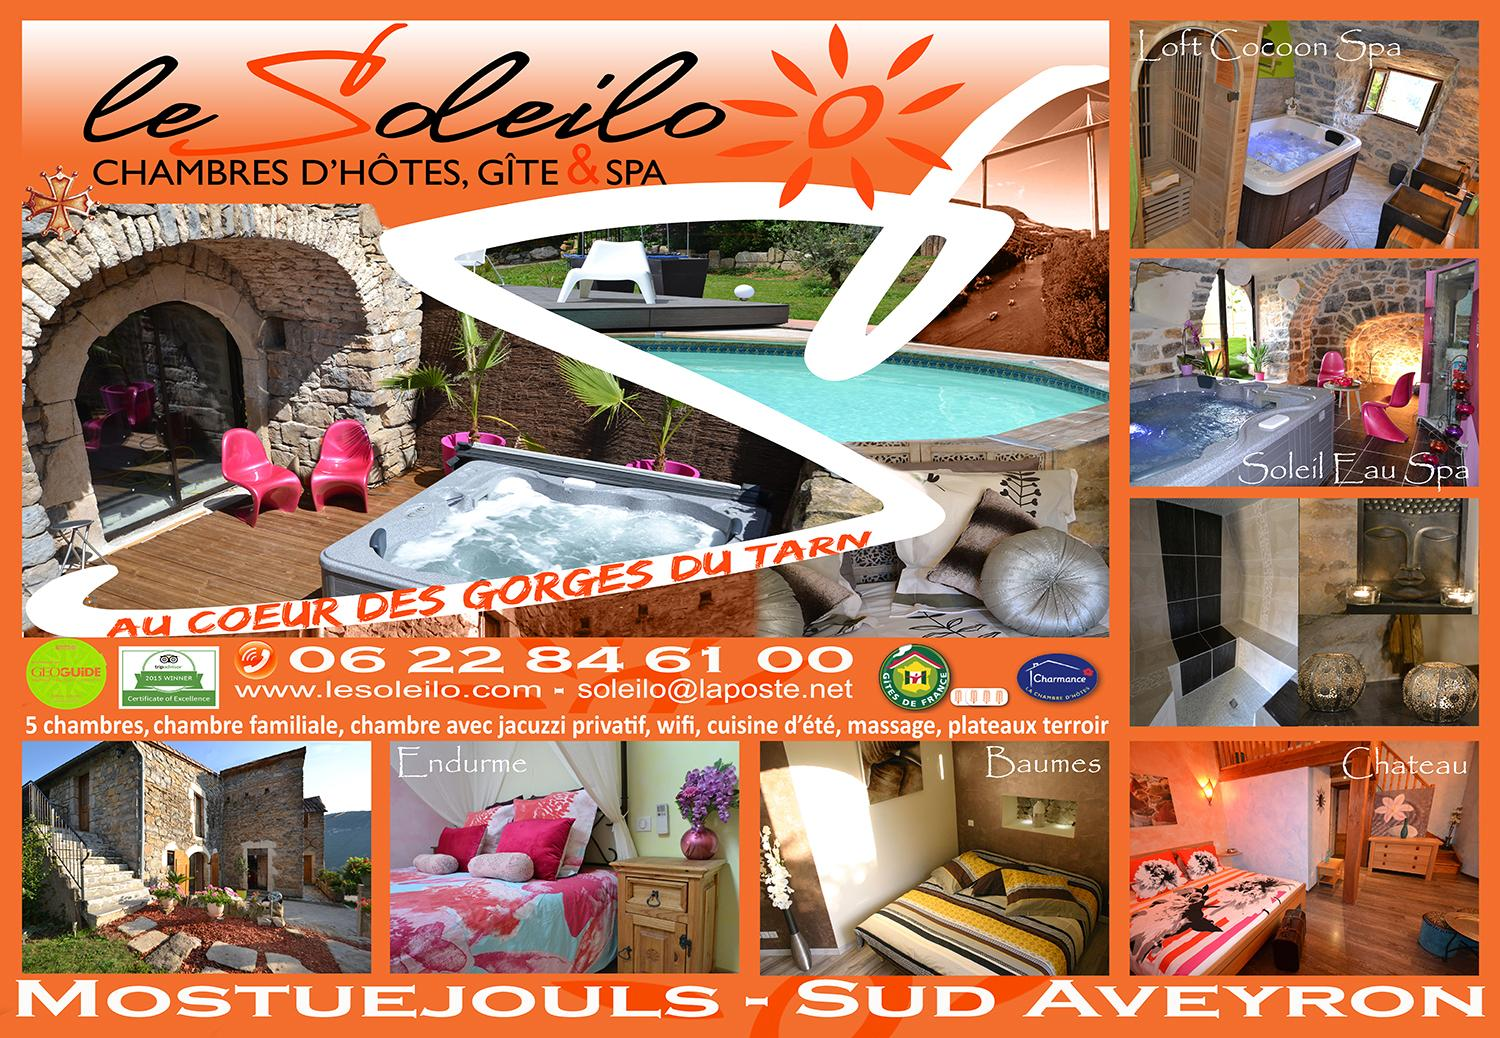 The Soleilo, bed and breakfast or cottage with jacuzzi and swimming pool Aveyron Gorges du Tarn